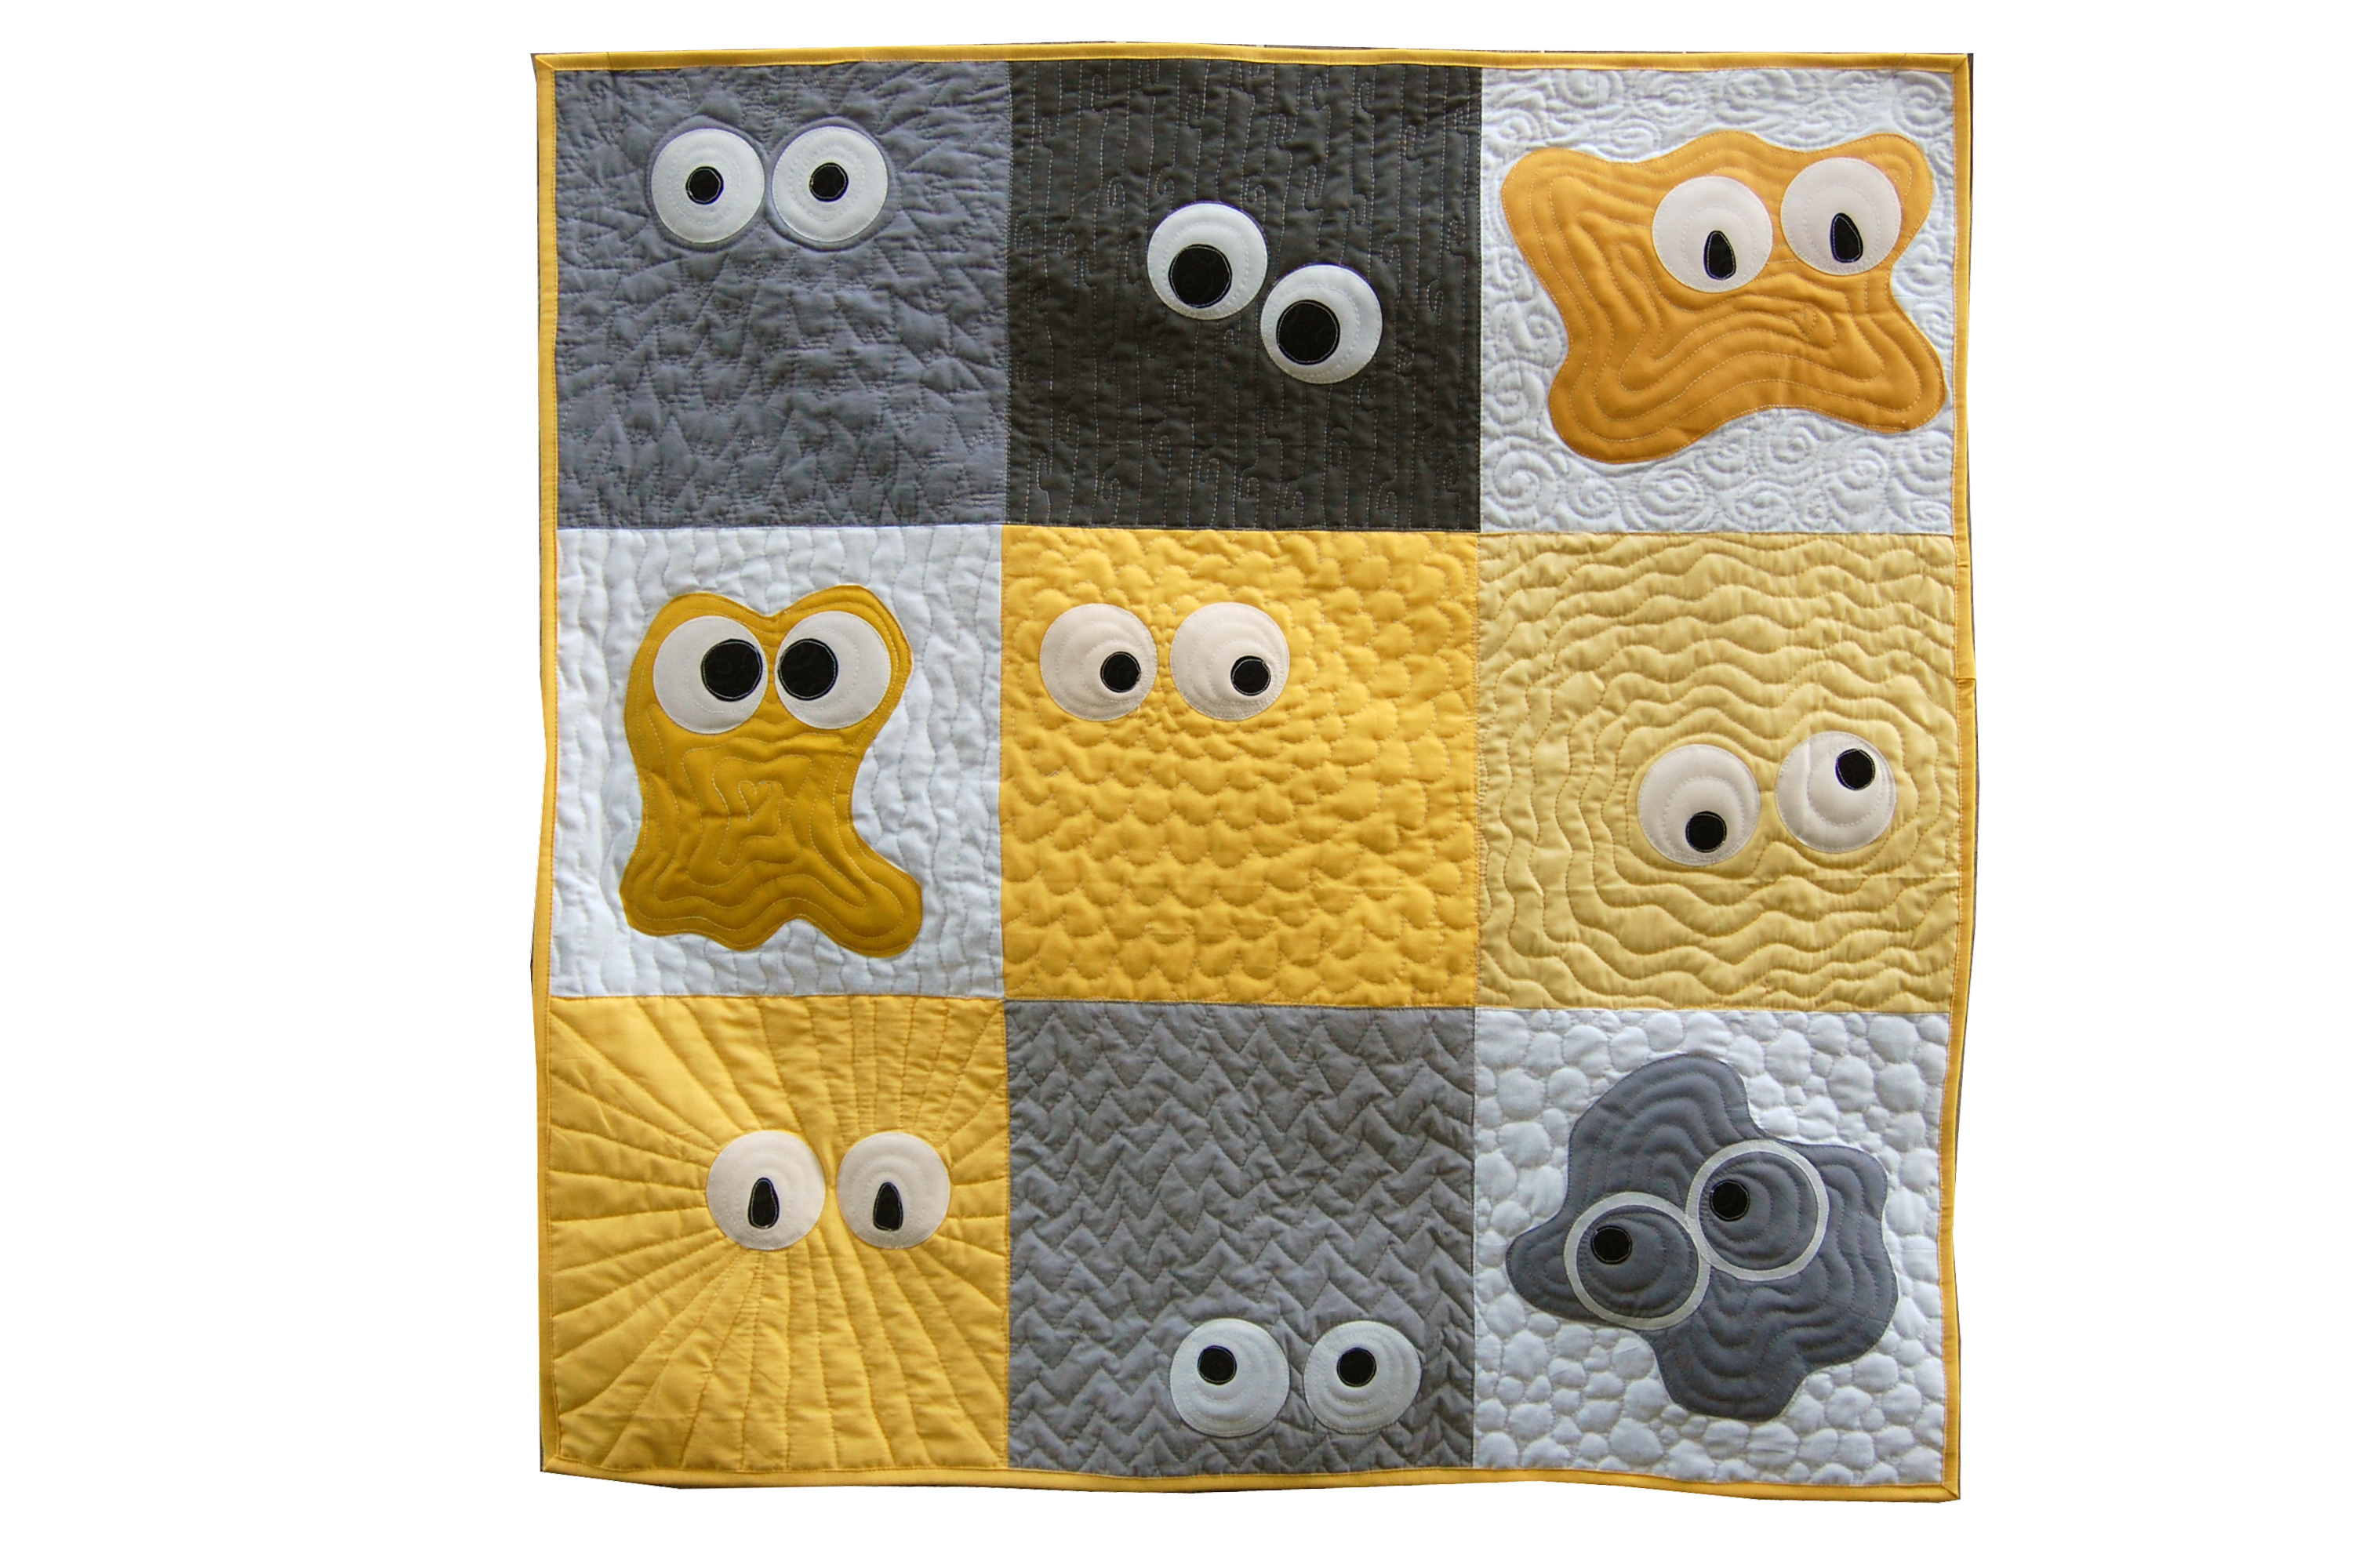 Purchase the Monster Madness Quilt Pattern at ReannaLily Designs